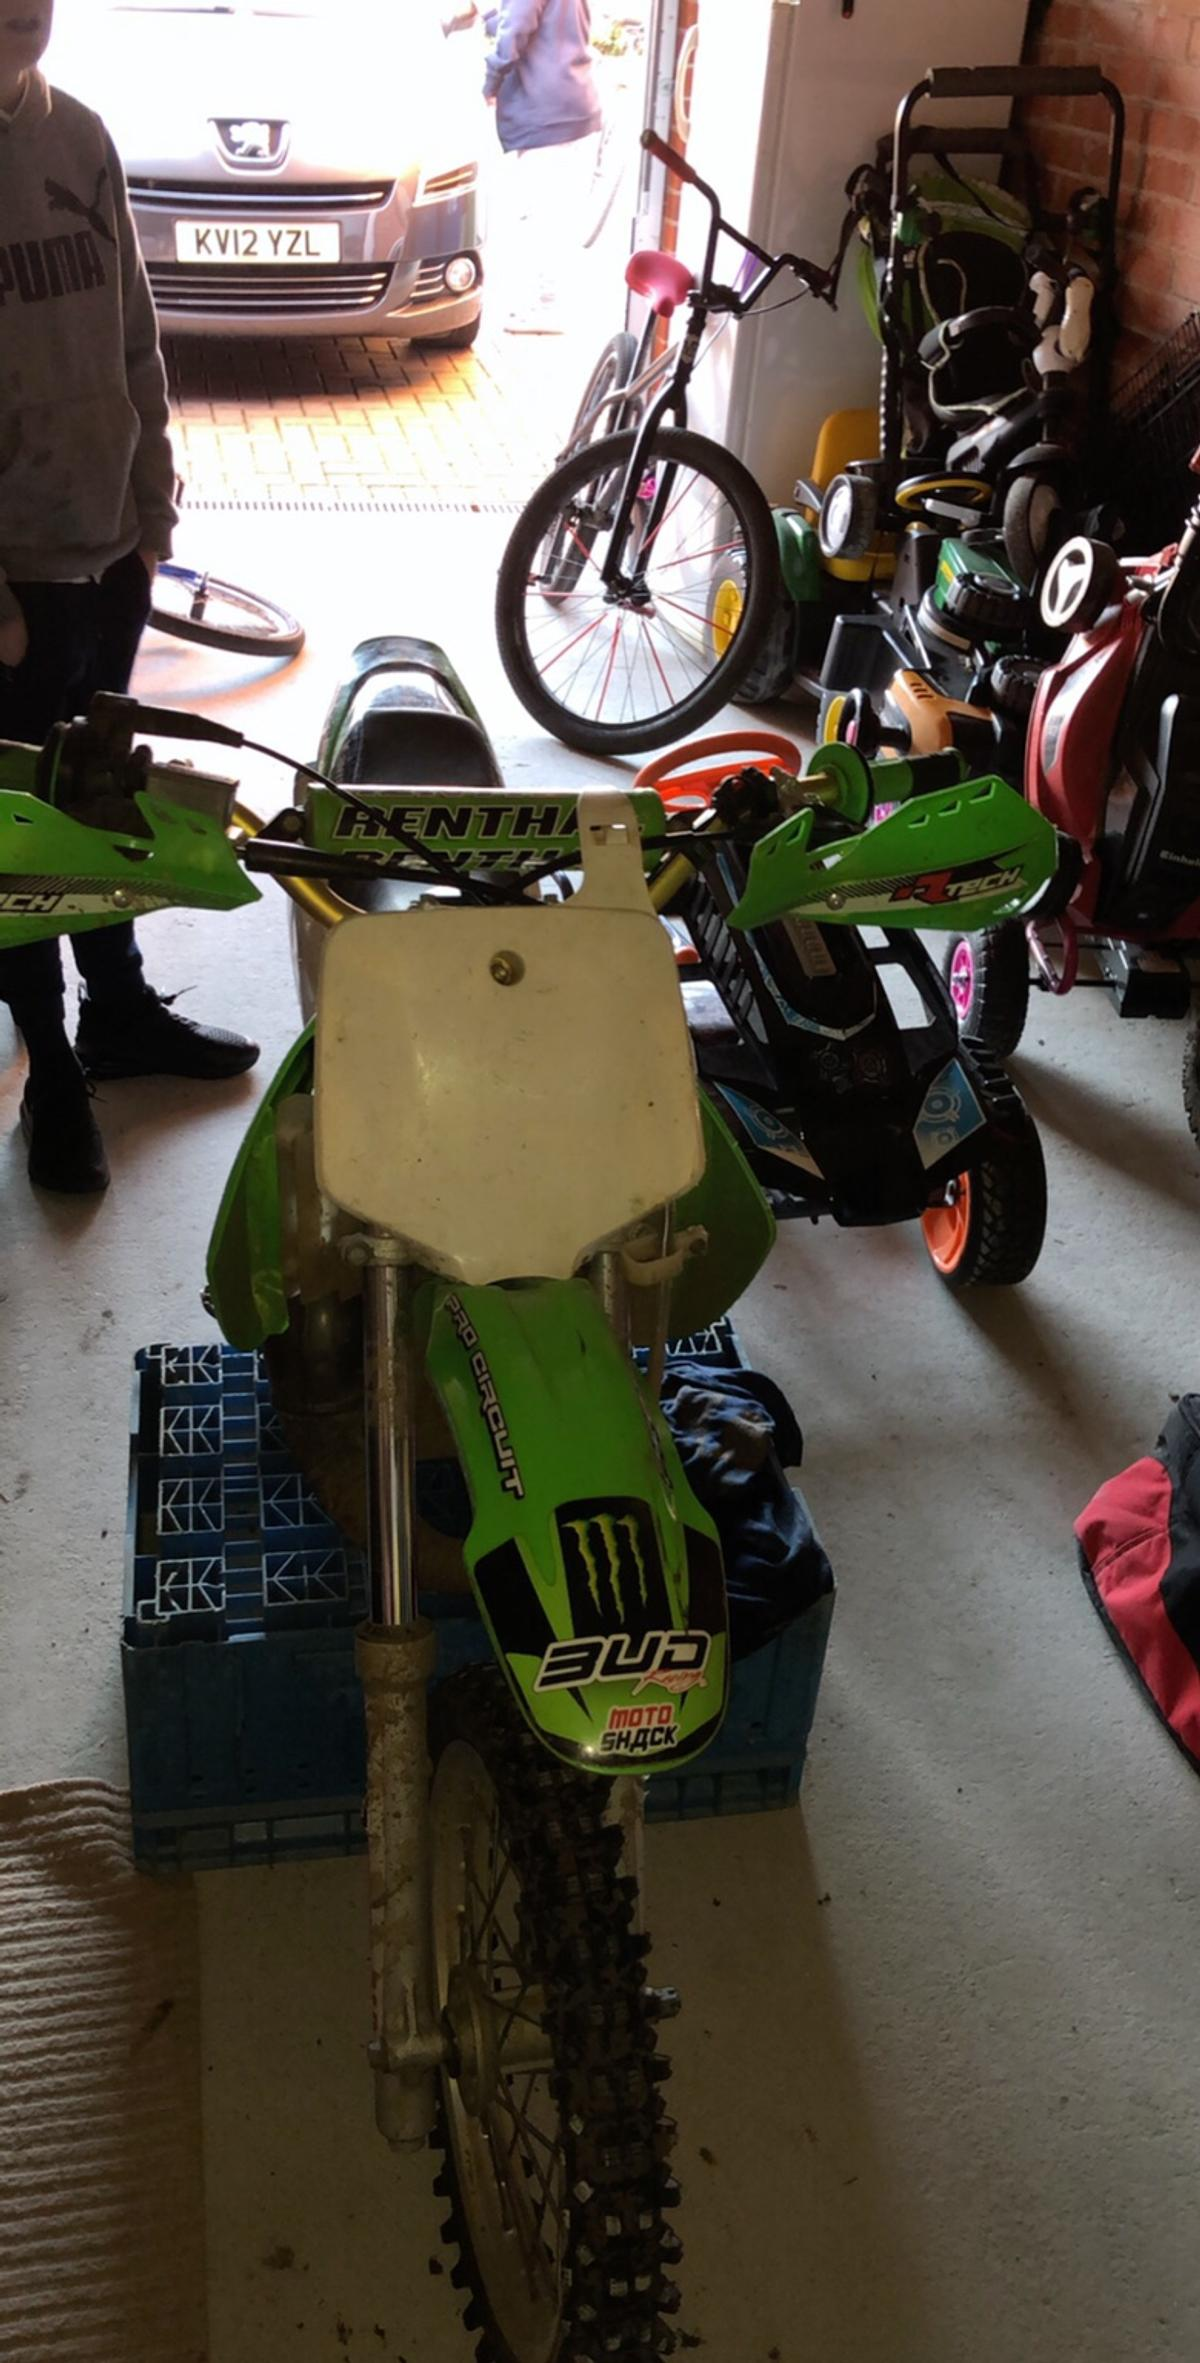 Kx65 racetuned to 85